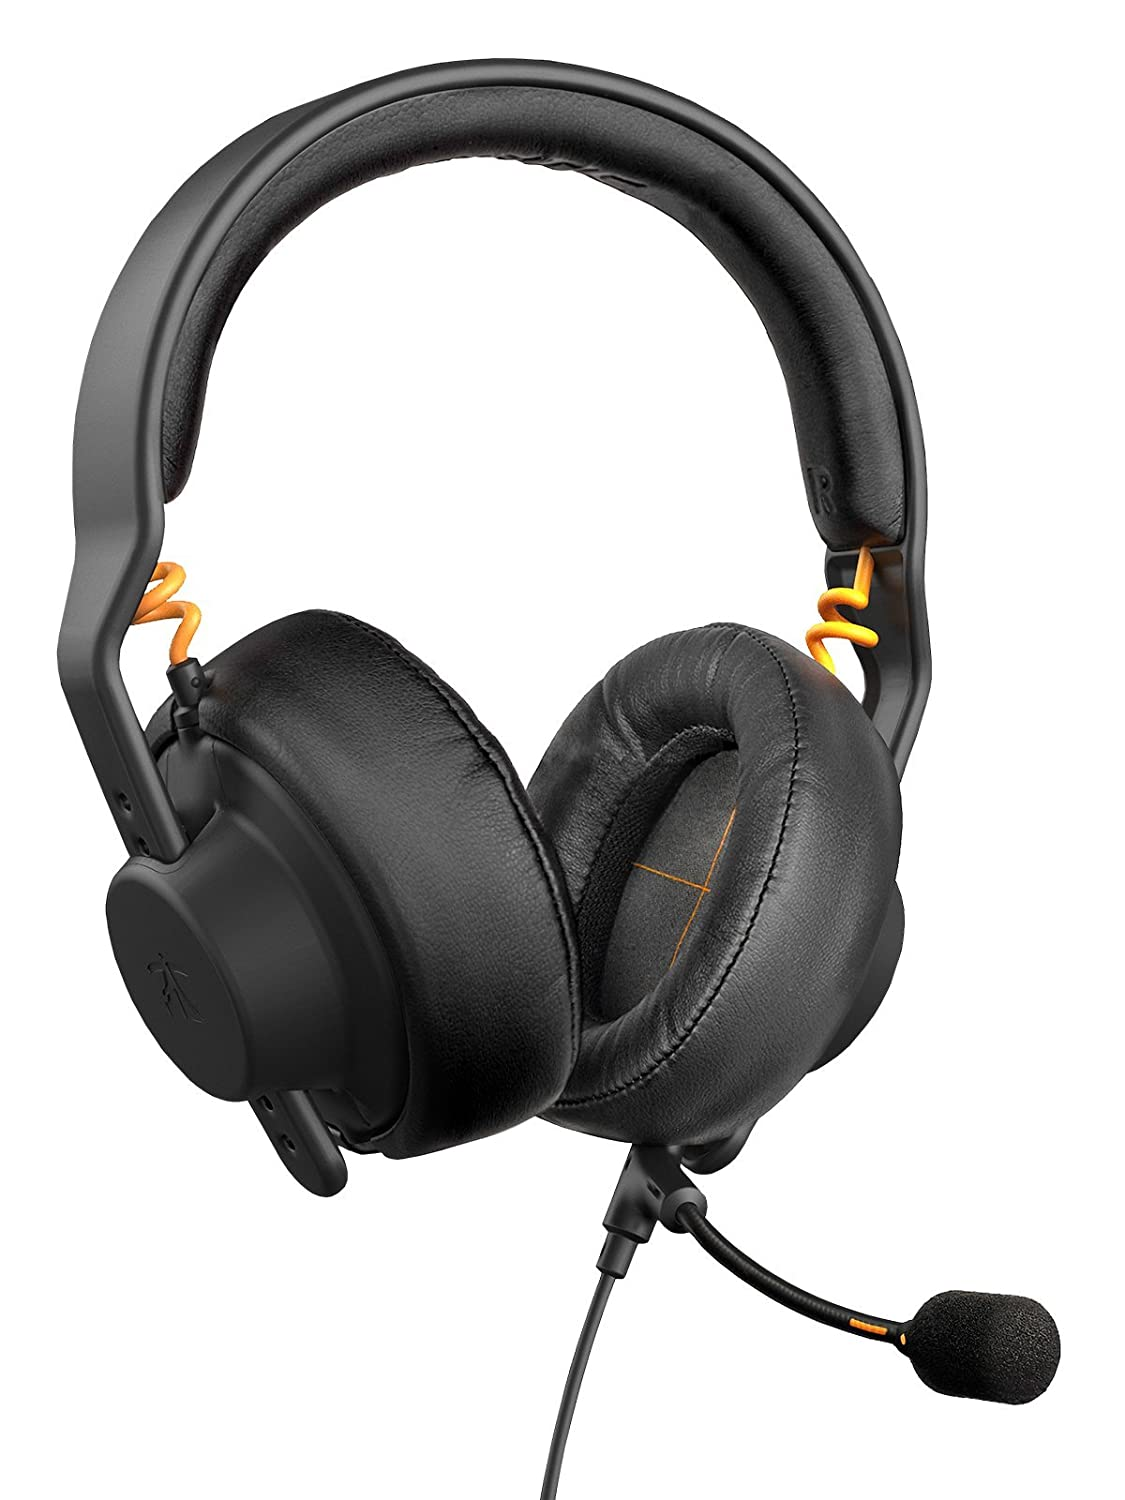 Fnatic Gear Duel cuffie da gaming (modello Over Ear e On Ear, microfono rimovibile, AIAIAI preregolazione TMA-2), nero Fnatic Gear Ltd FG-HS-5060455780457